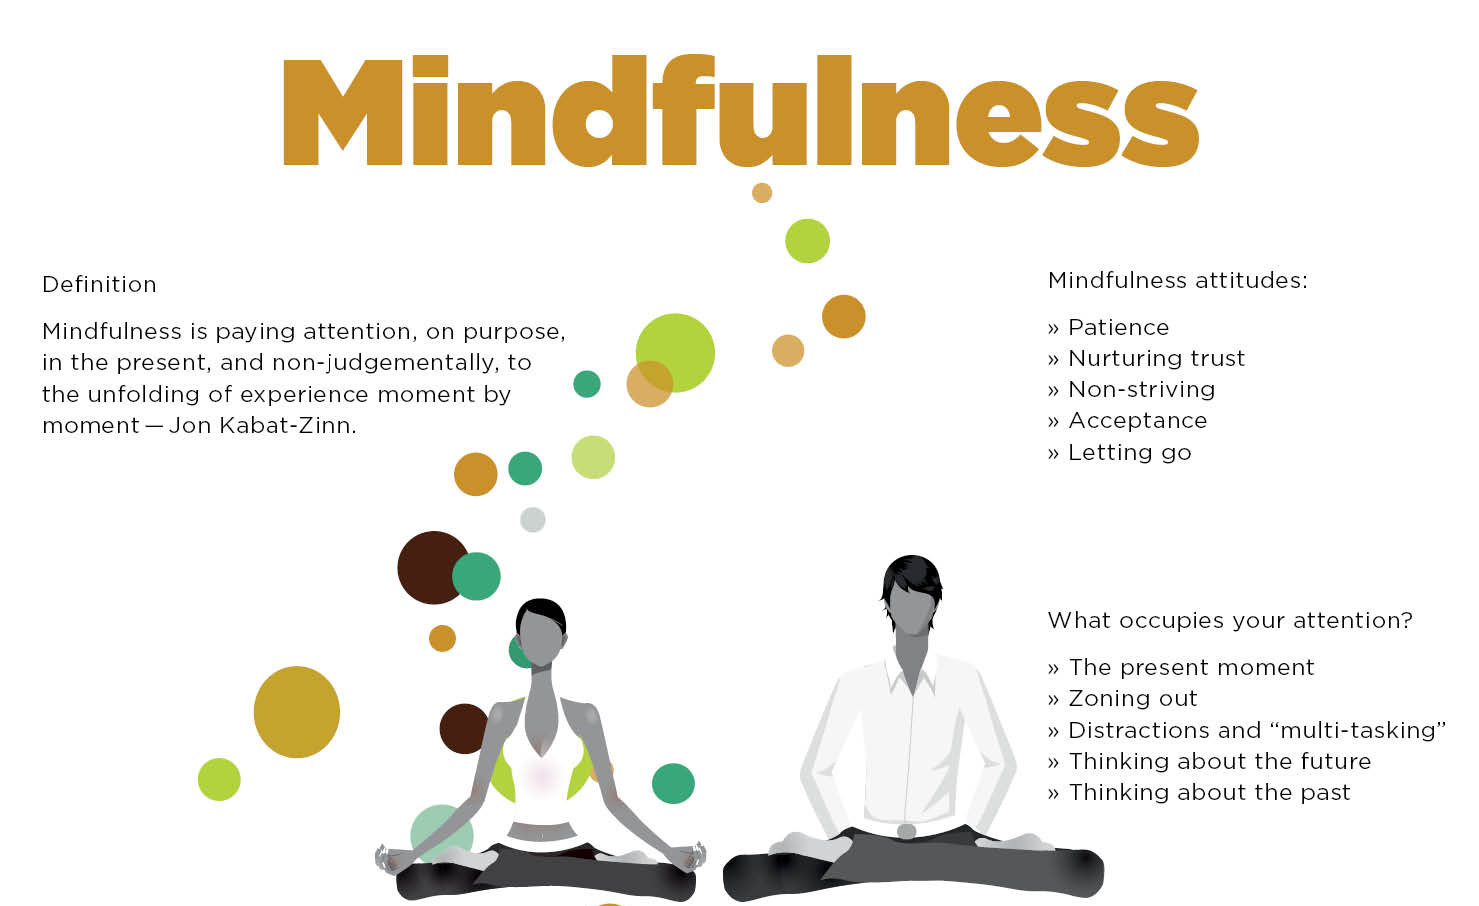 Can Mindfulness Replace Medication For This Mental Condition